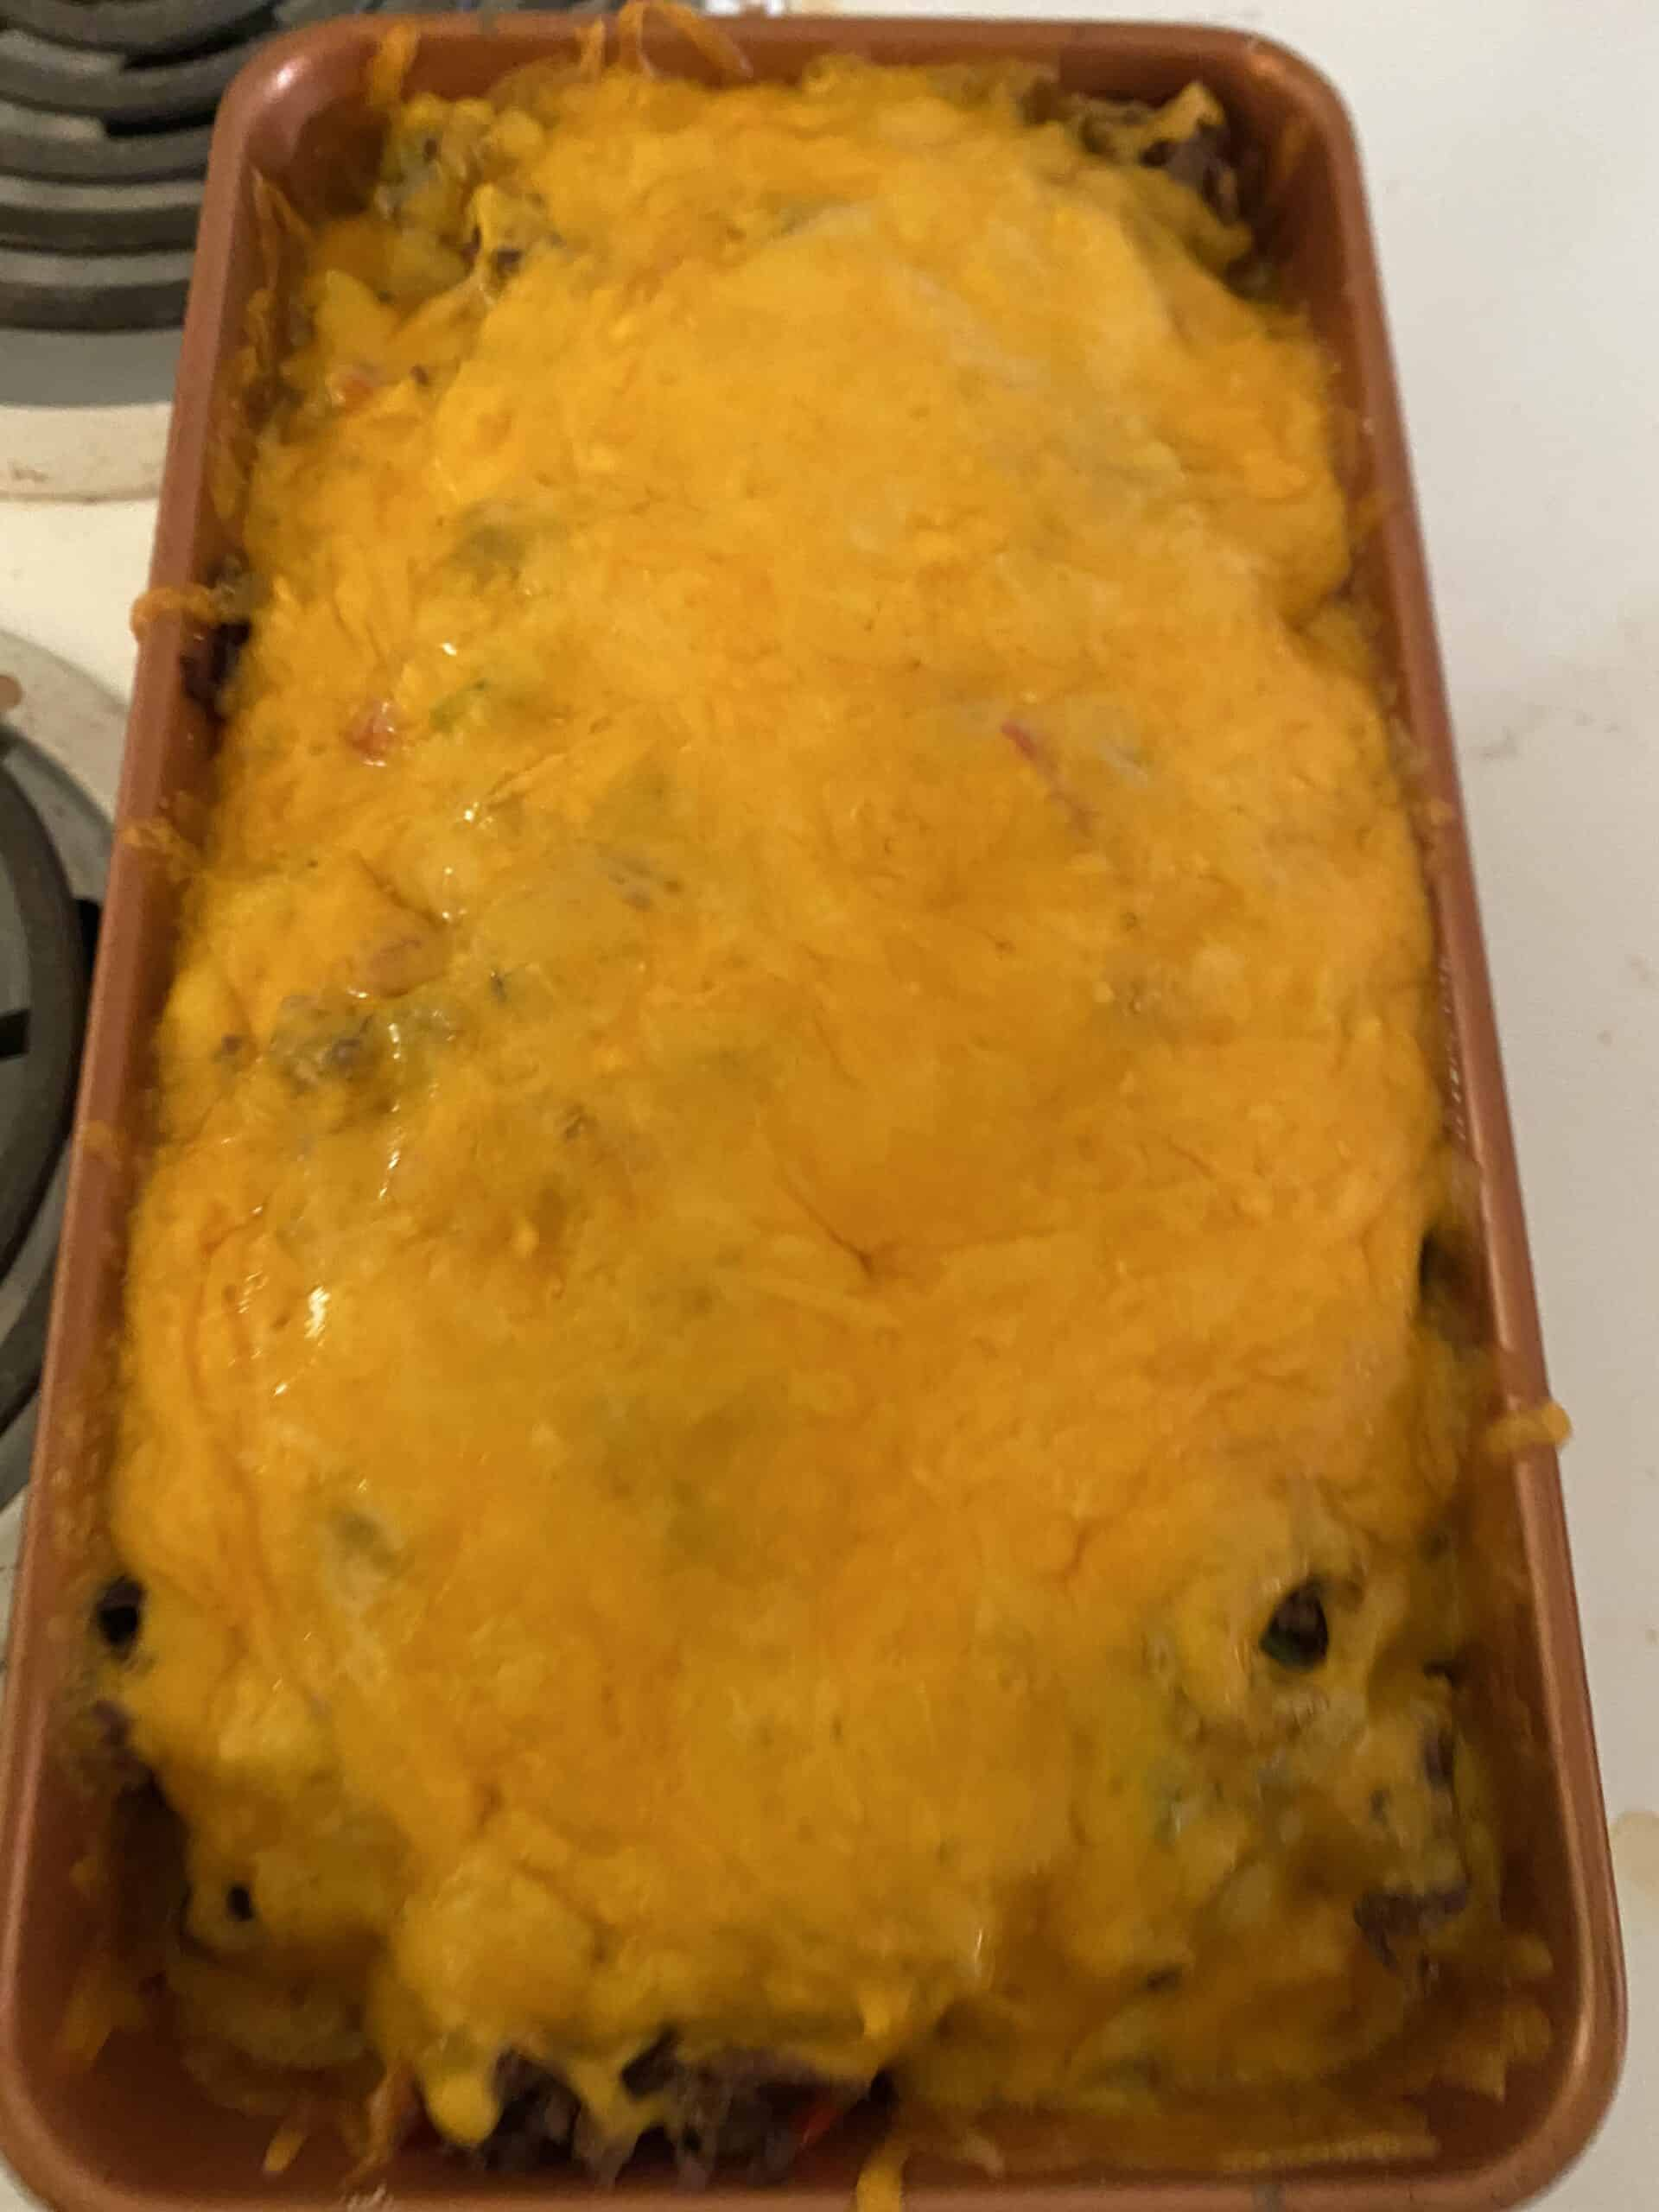 Make this delicious potato philly cheesesteak casserole in a few simple steps. This will make the family happy and full.